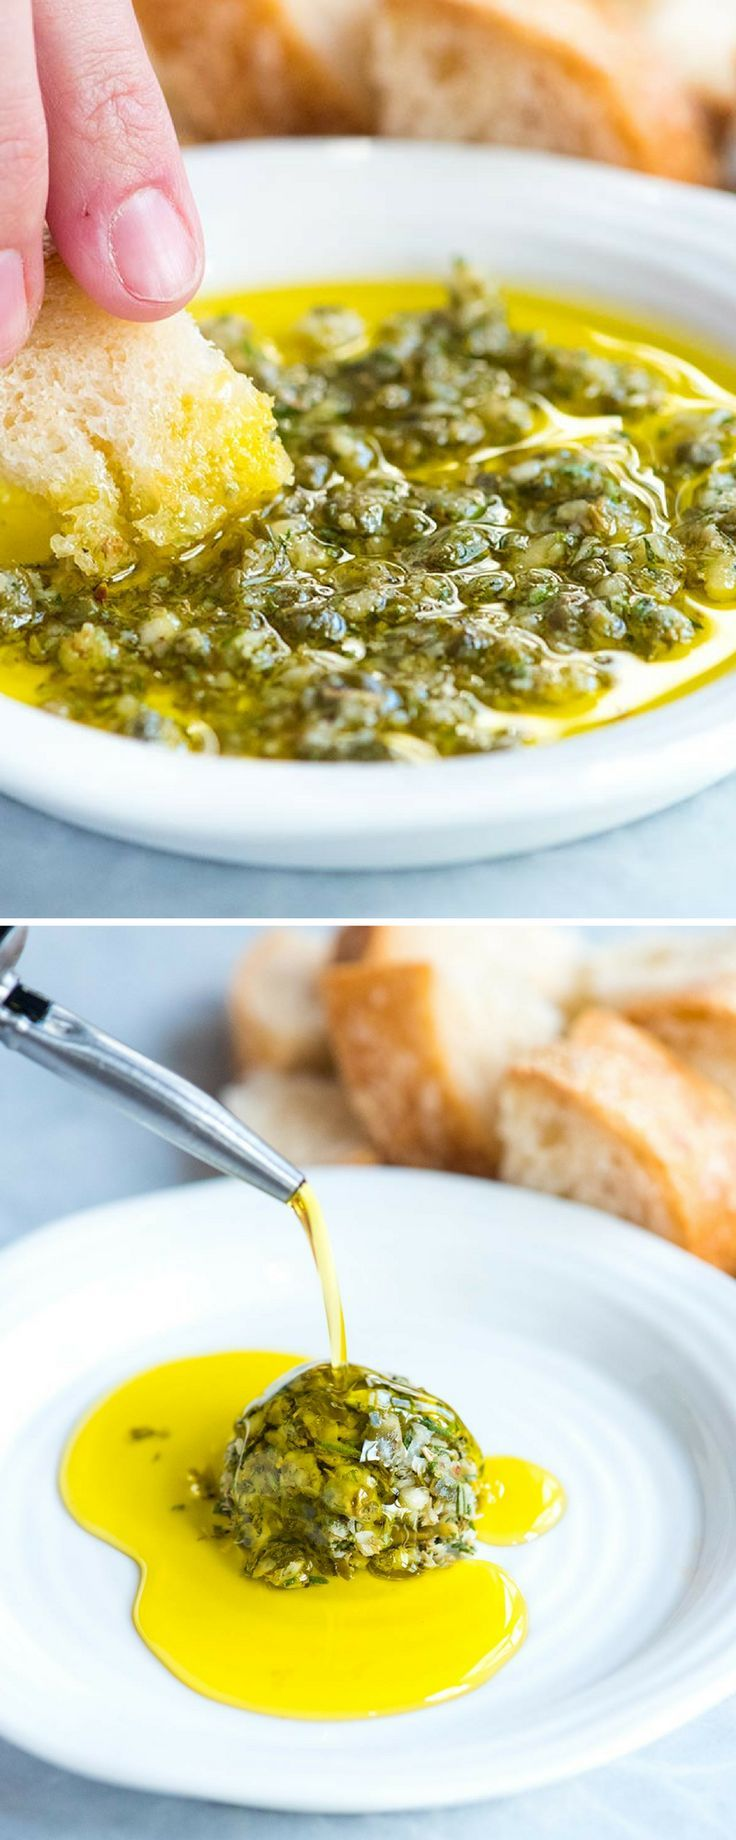 Ridiculously Good Olive Oil Dip #oliveoils